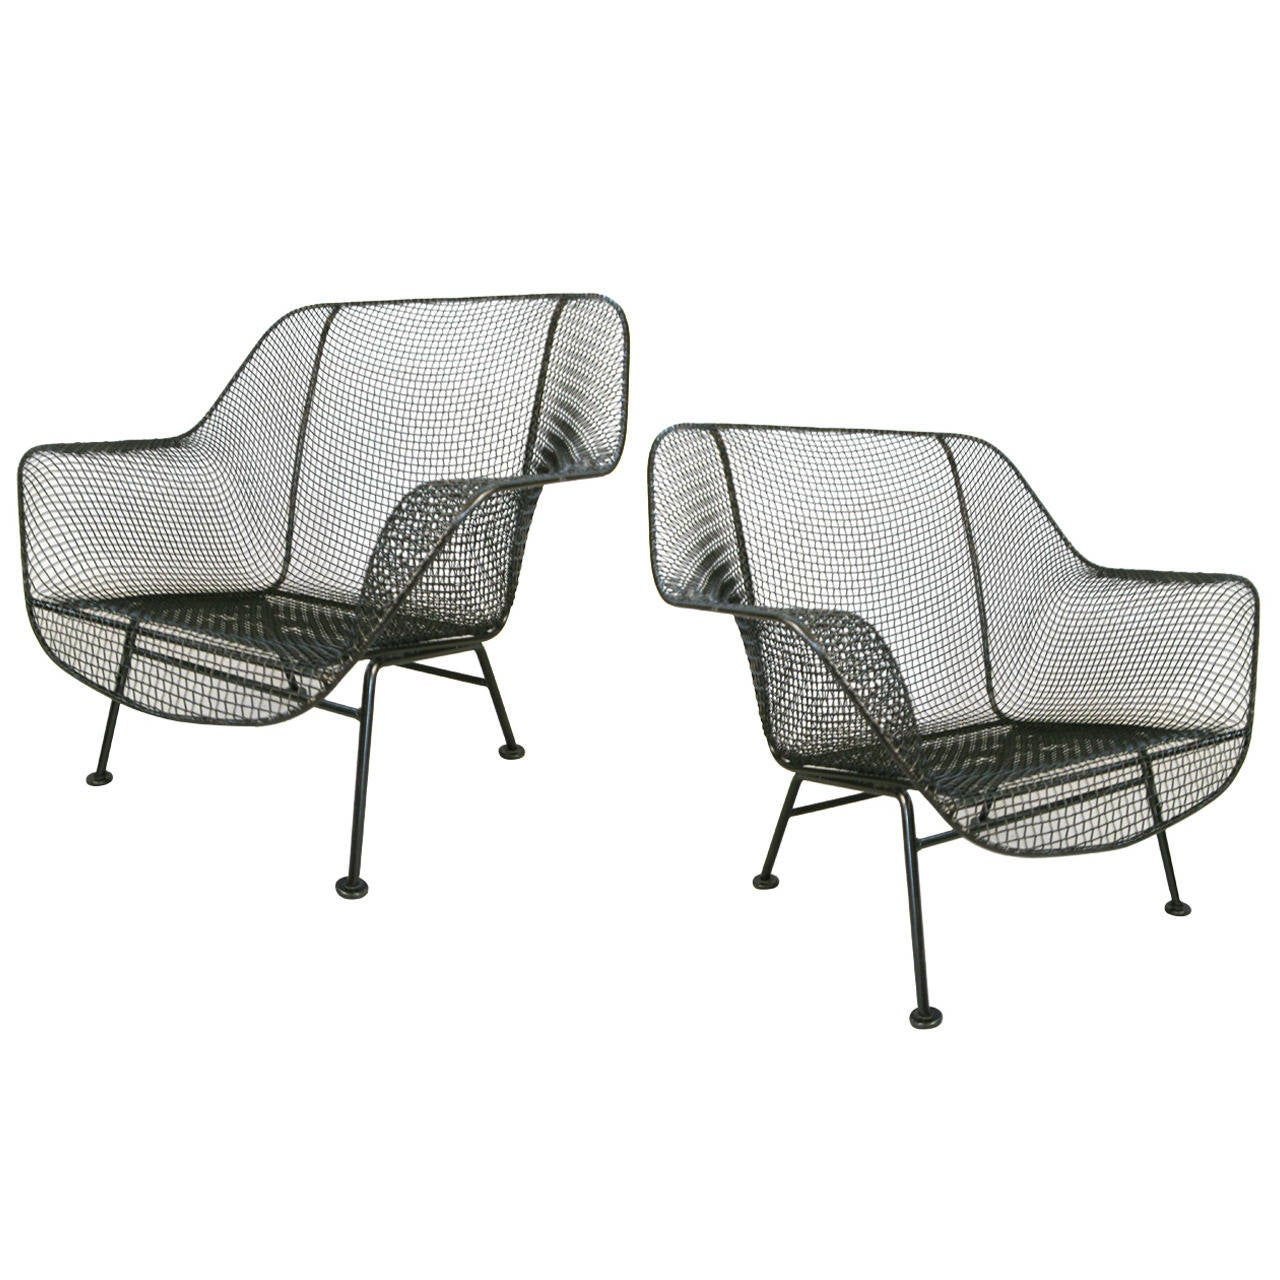 Pair of vintage 1950s 39 sculptura 39 garden lounge chairs by for Woodard outdoor furniture